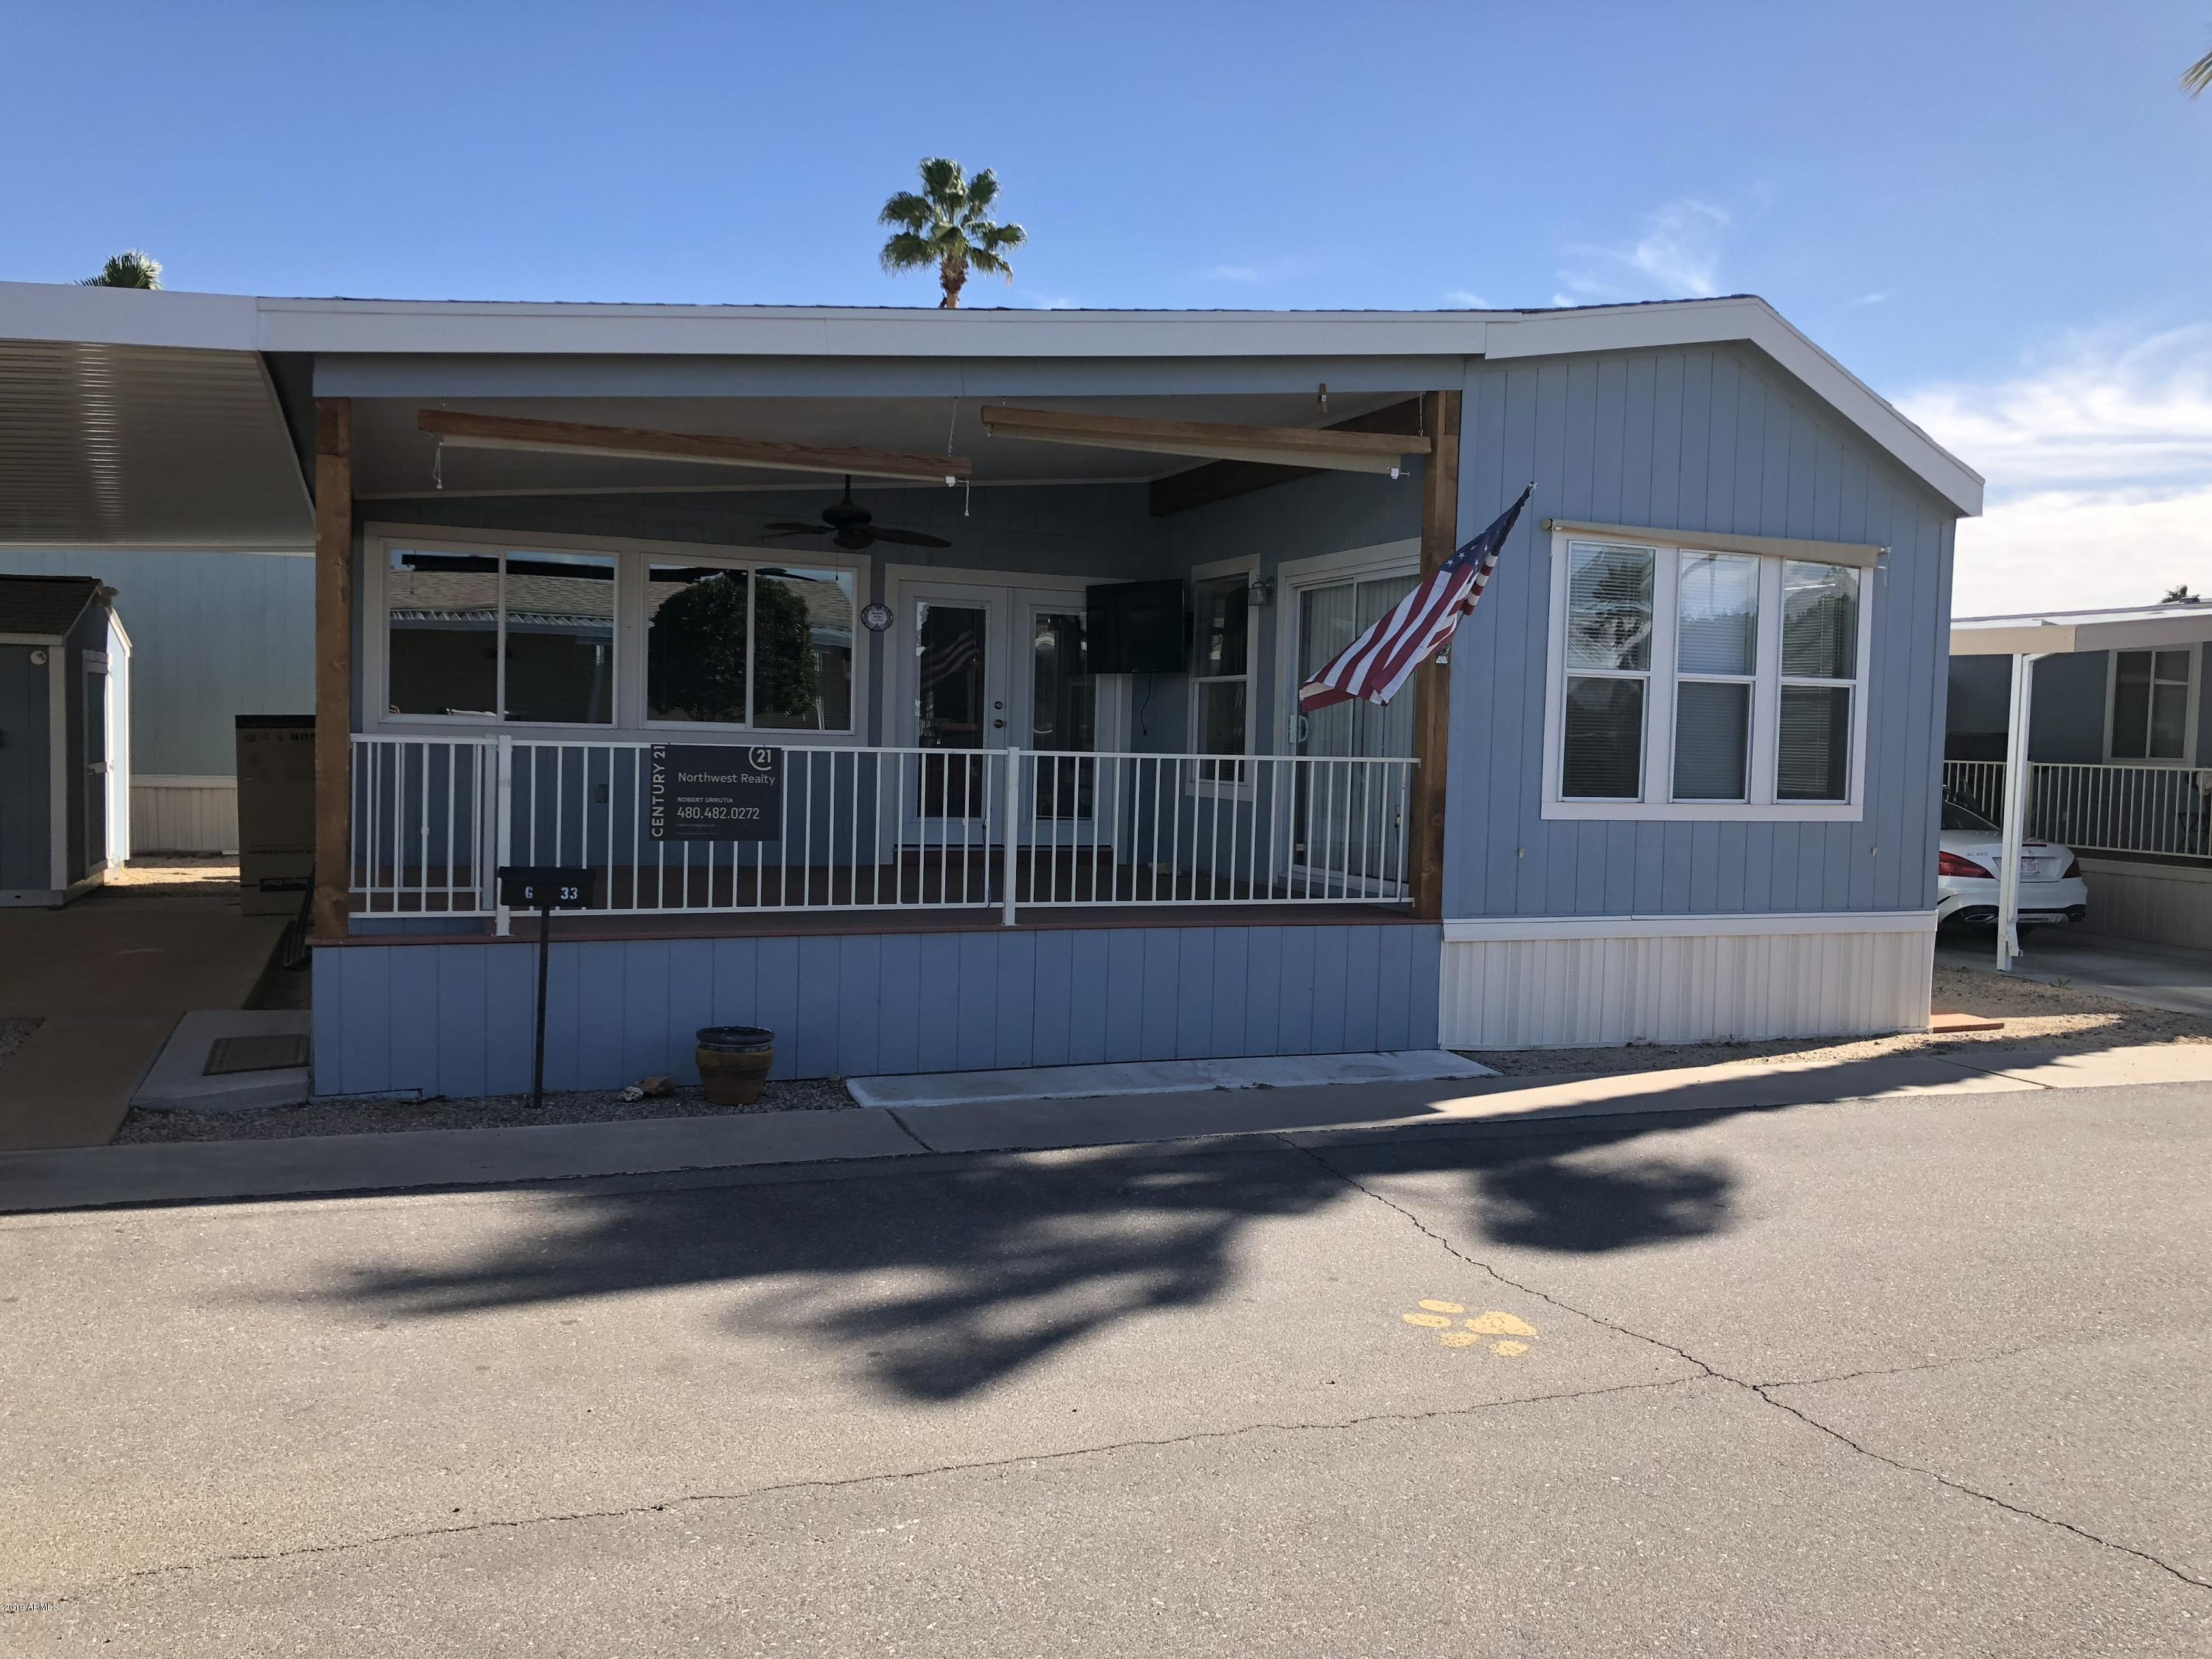 3020 E MAIN Street, #G-33, Mesa, 85213 - SOLD LISTING, MLS # 5871627 |  Better Homes and Gardens BloomTree Realty